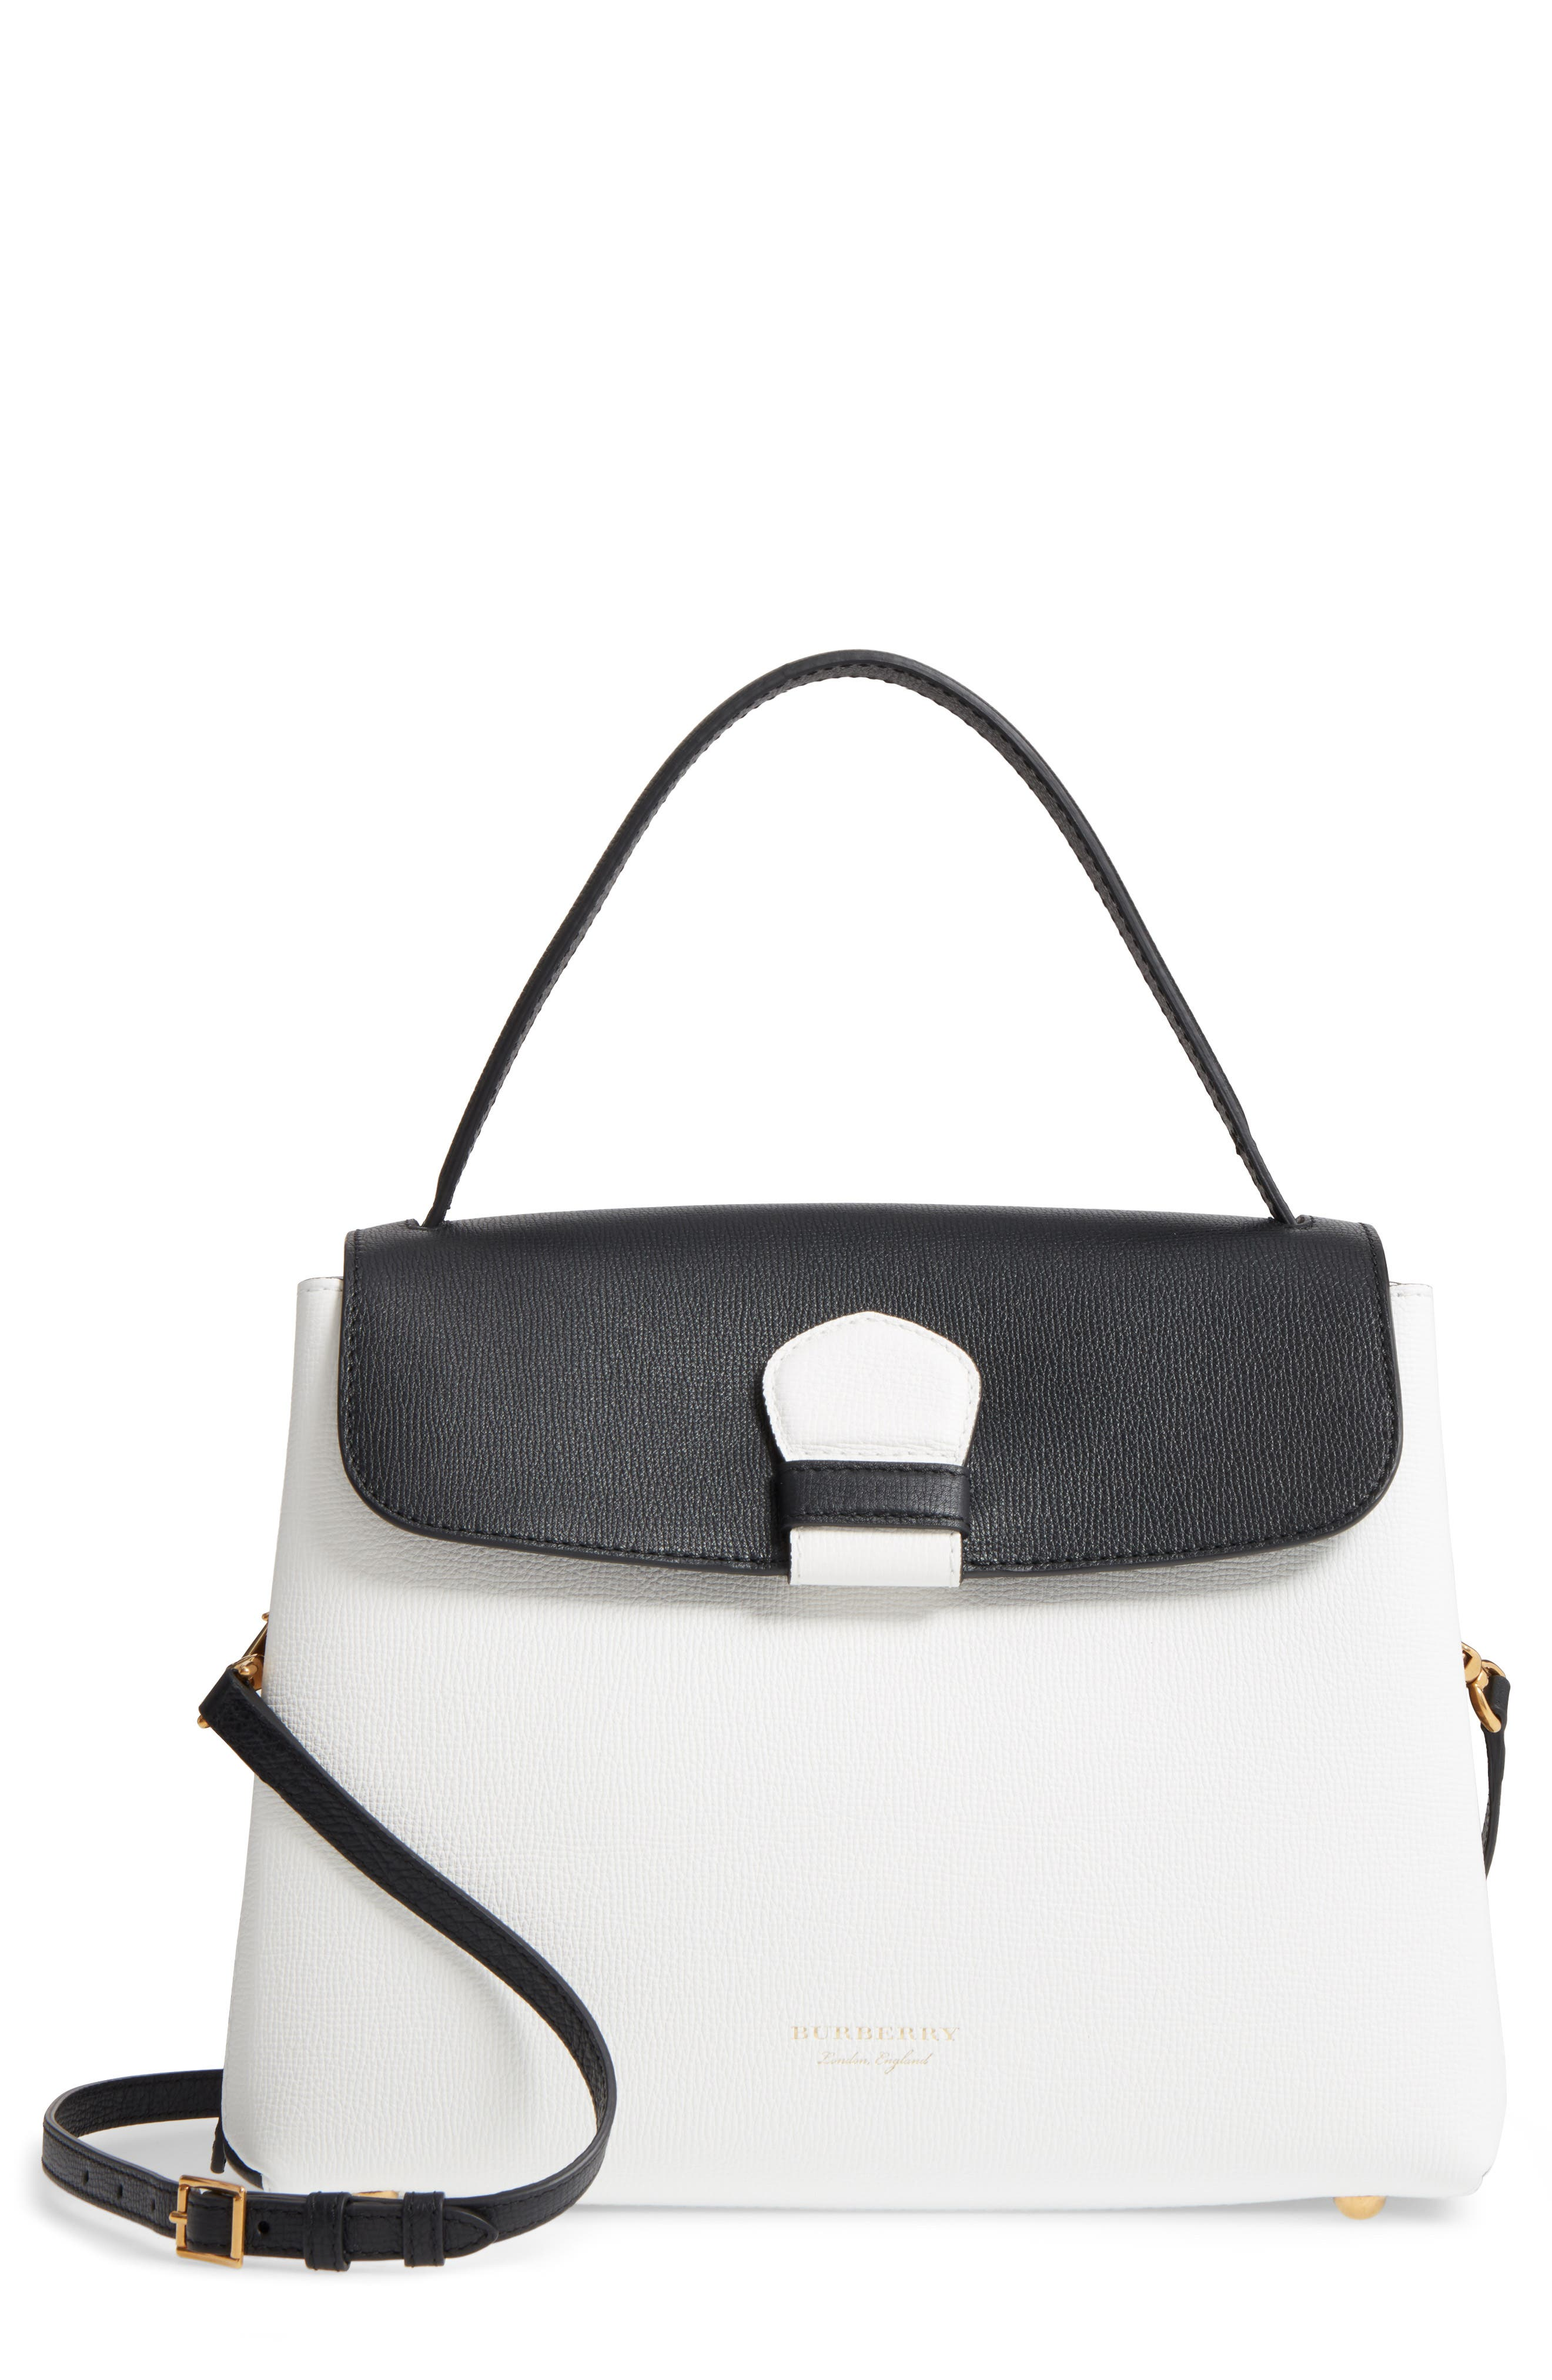 Main Image - Burberry Medium Camberley Colorblock Leather & House Check Top Handle Satchel